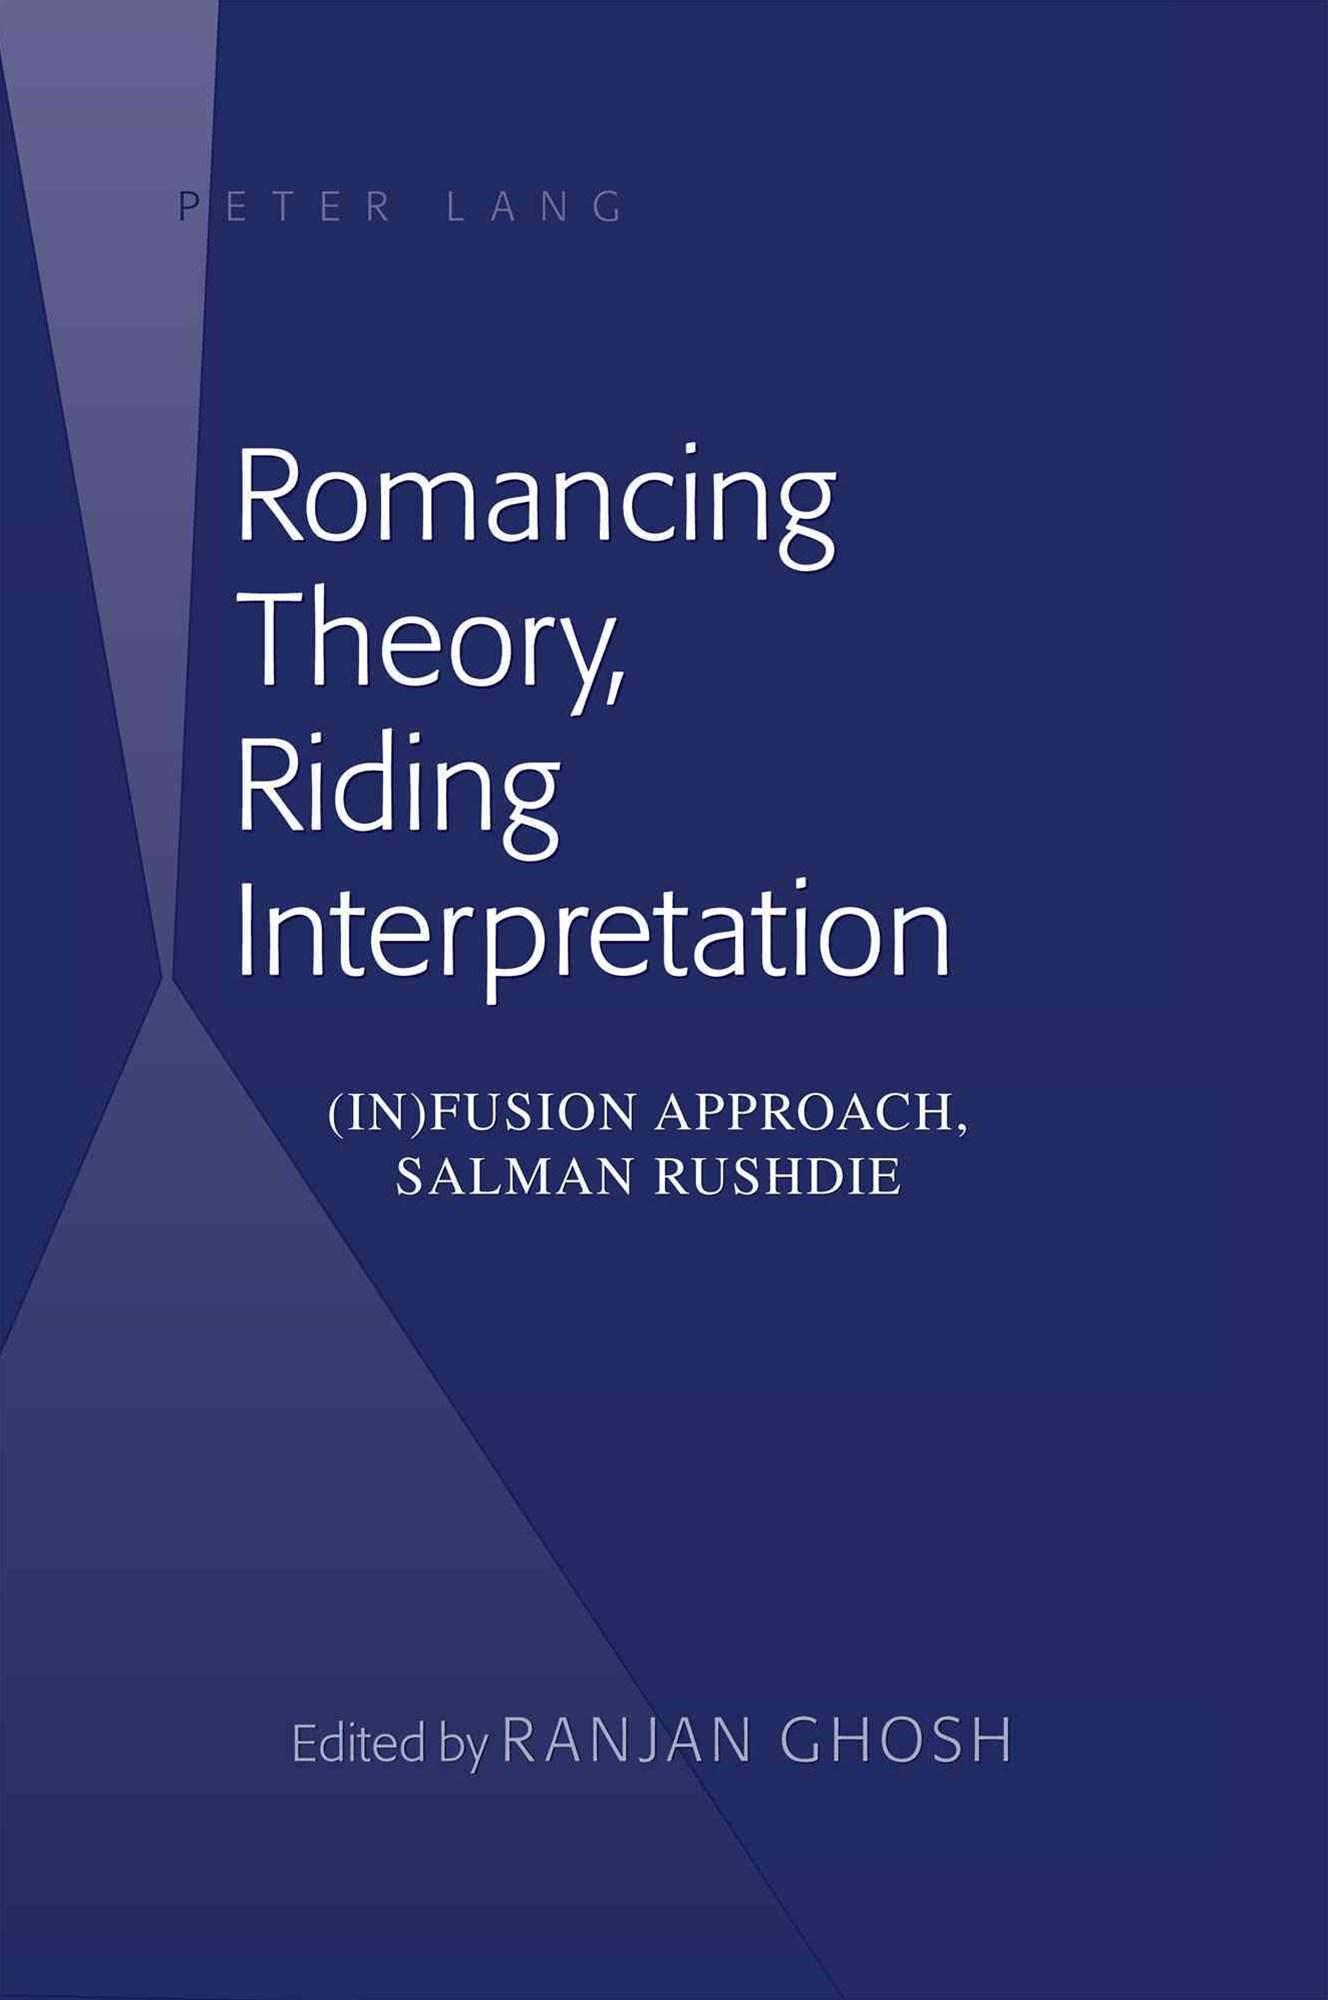 Romancing Theory, Riding Interpretation